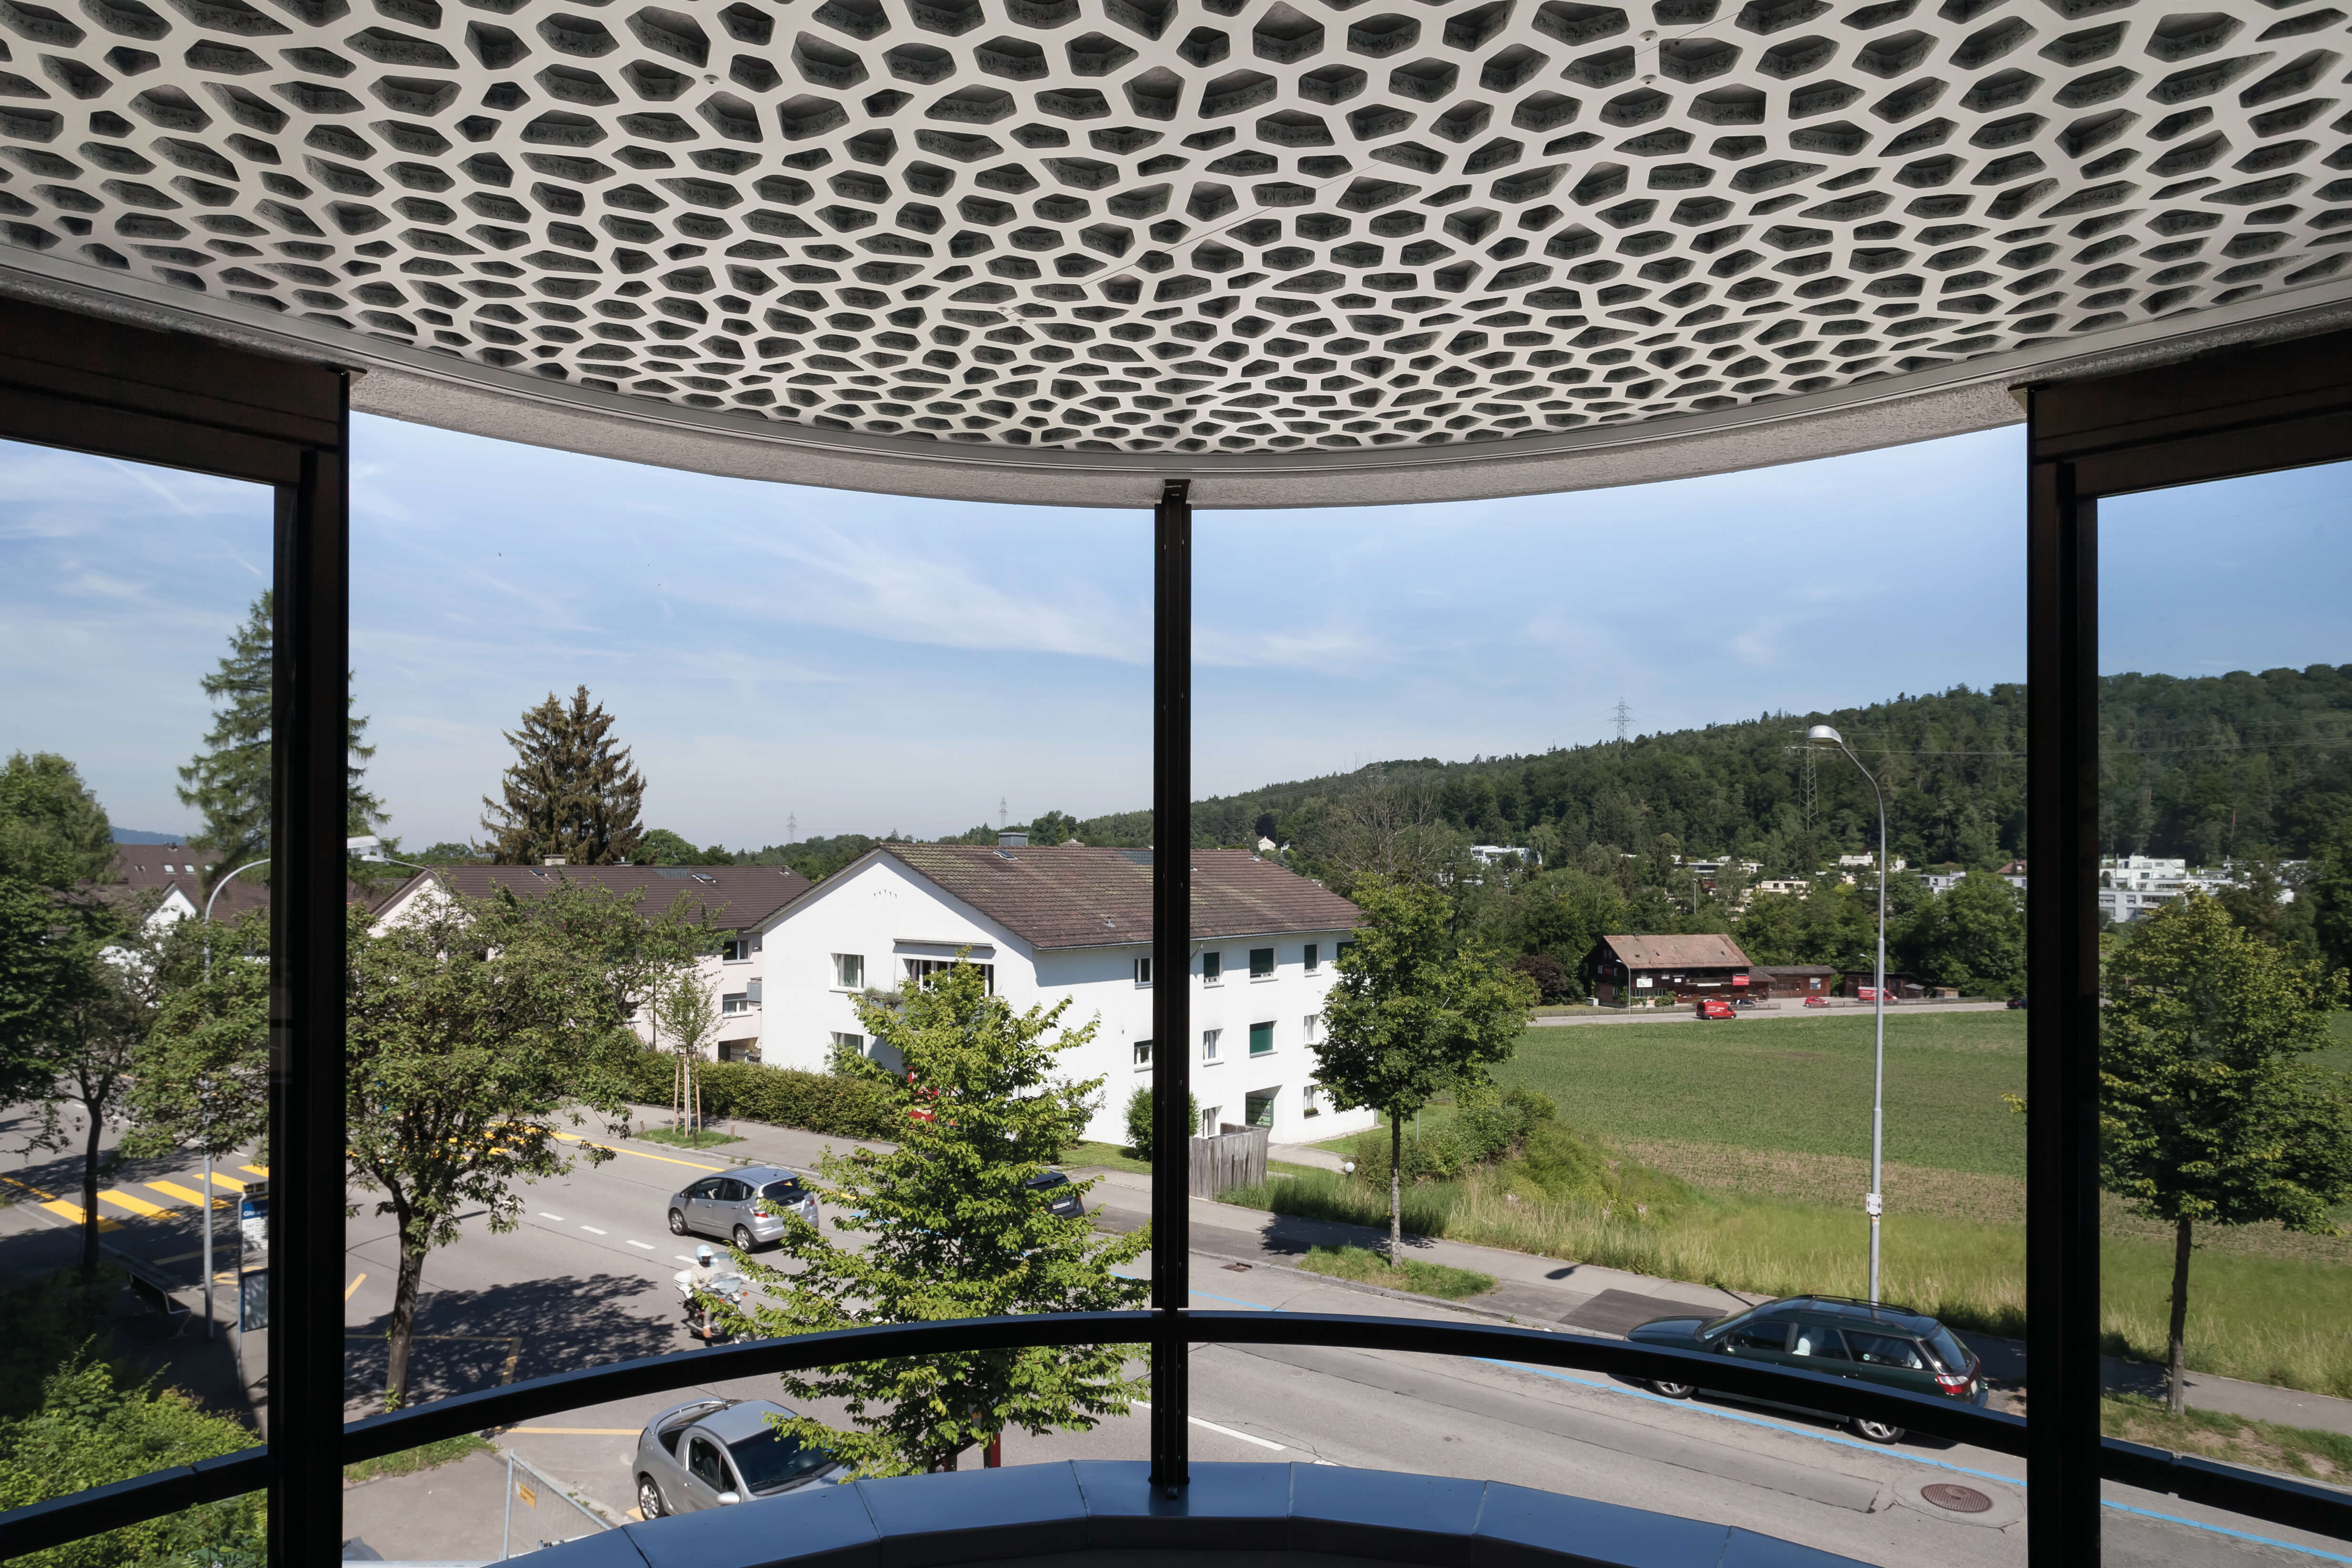 https://www.bruag.com/wp-content/uploads/2015/06/Balcony-Acoustics-Bruag_Formboard-top-pine-18mm_Perforation-50200_Project-Oasis-Z%C3%BCrich_a4D-Architekte_Photo-Credit-David-Halter_1.jpg